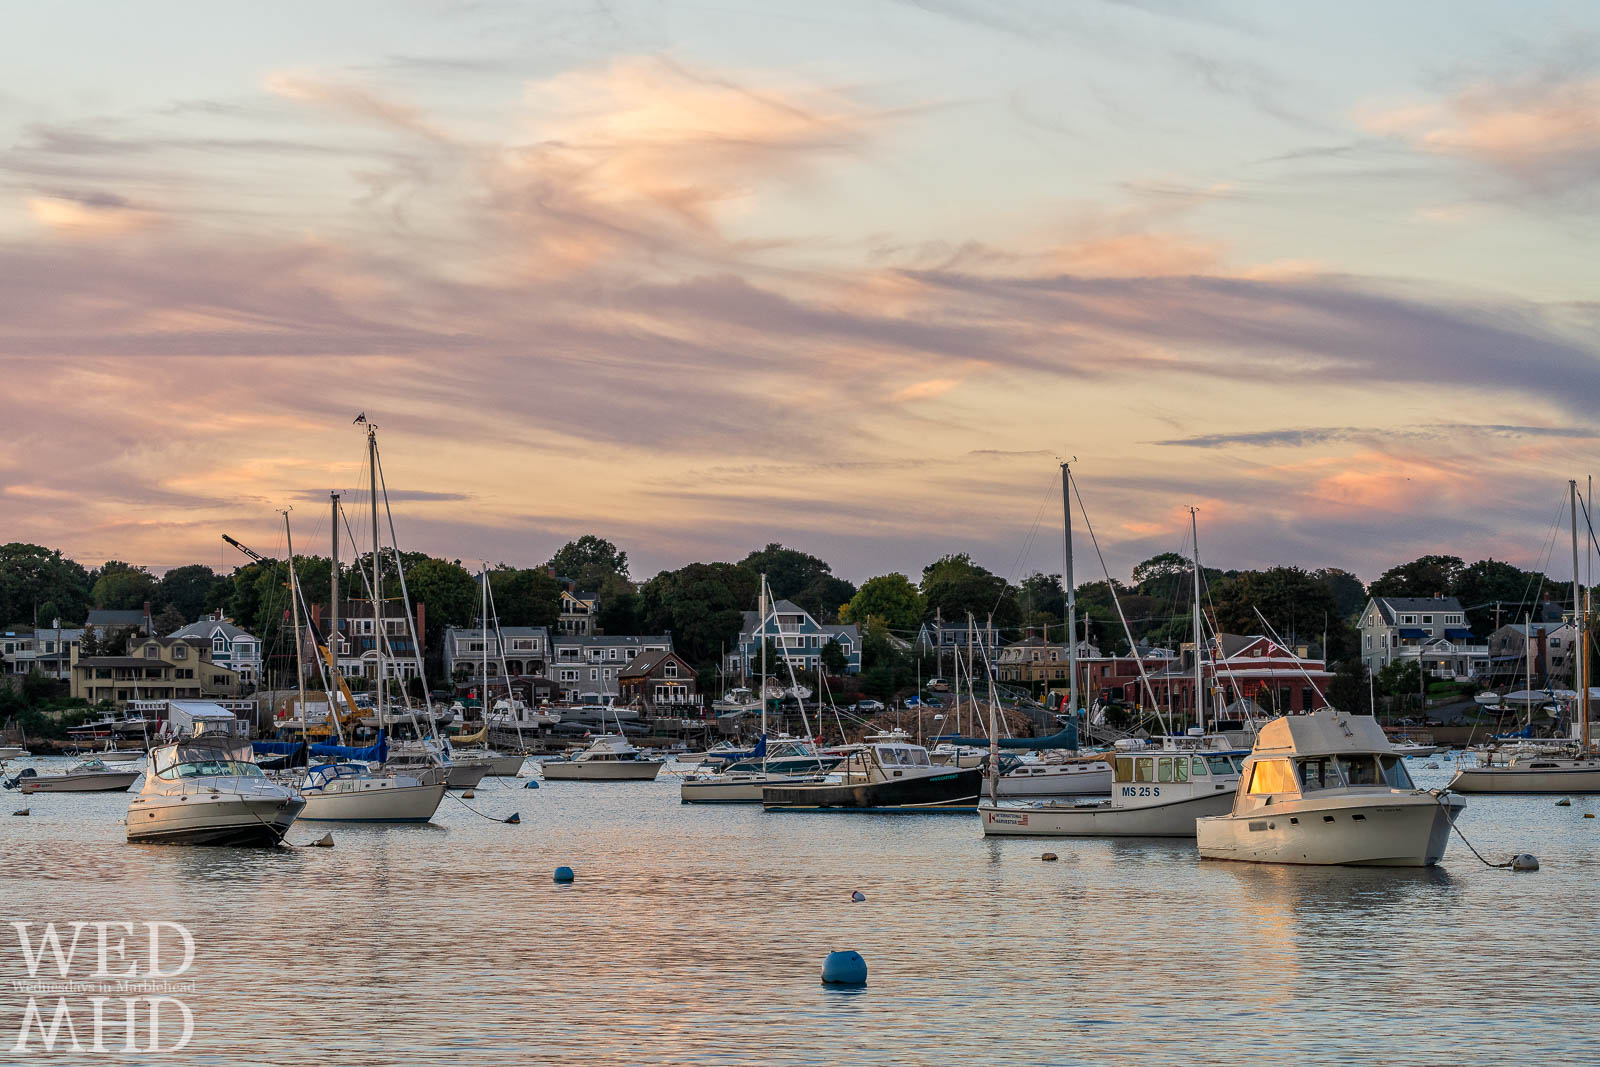 Sunset is reflected in the windows of a boat moored mid-harbor as the moorings begin to empty with the calendar turning to October